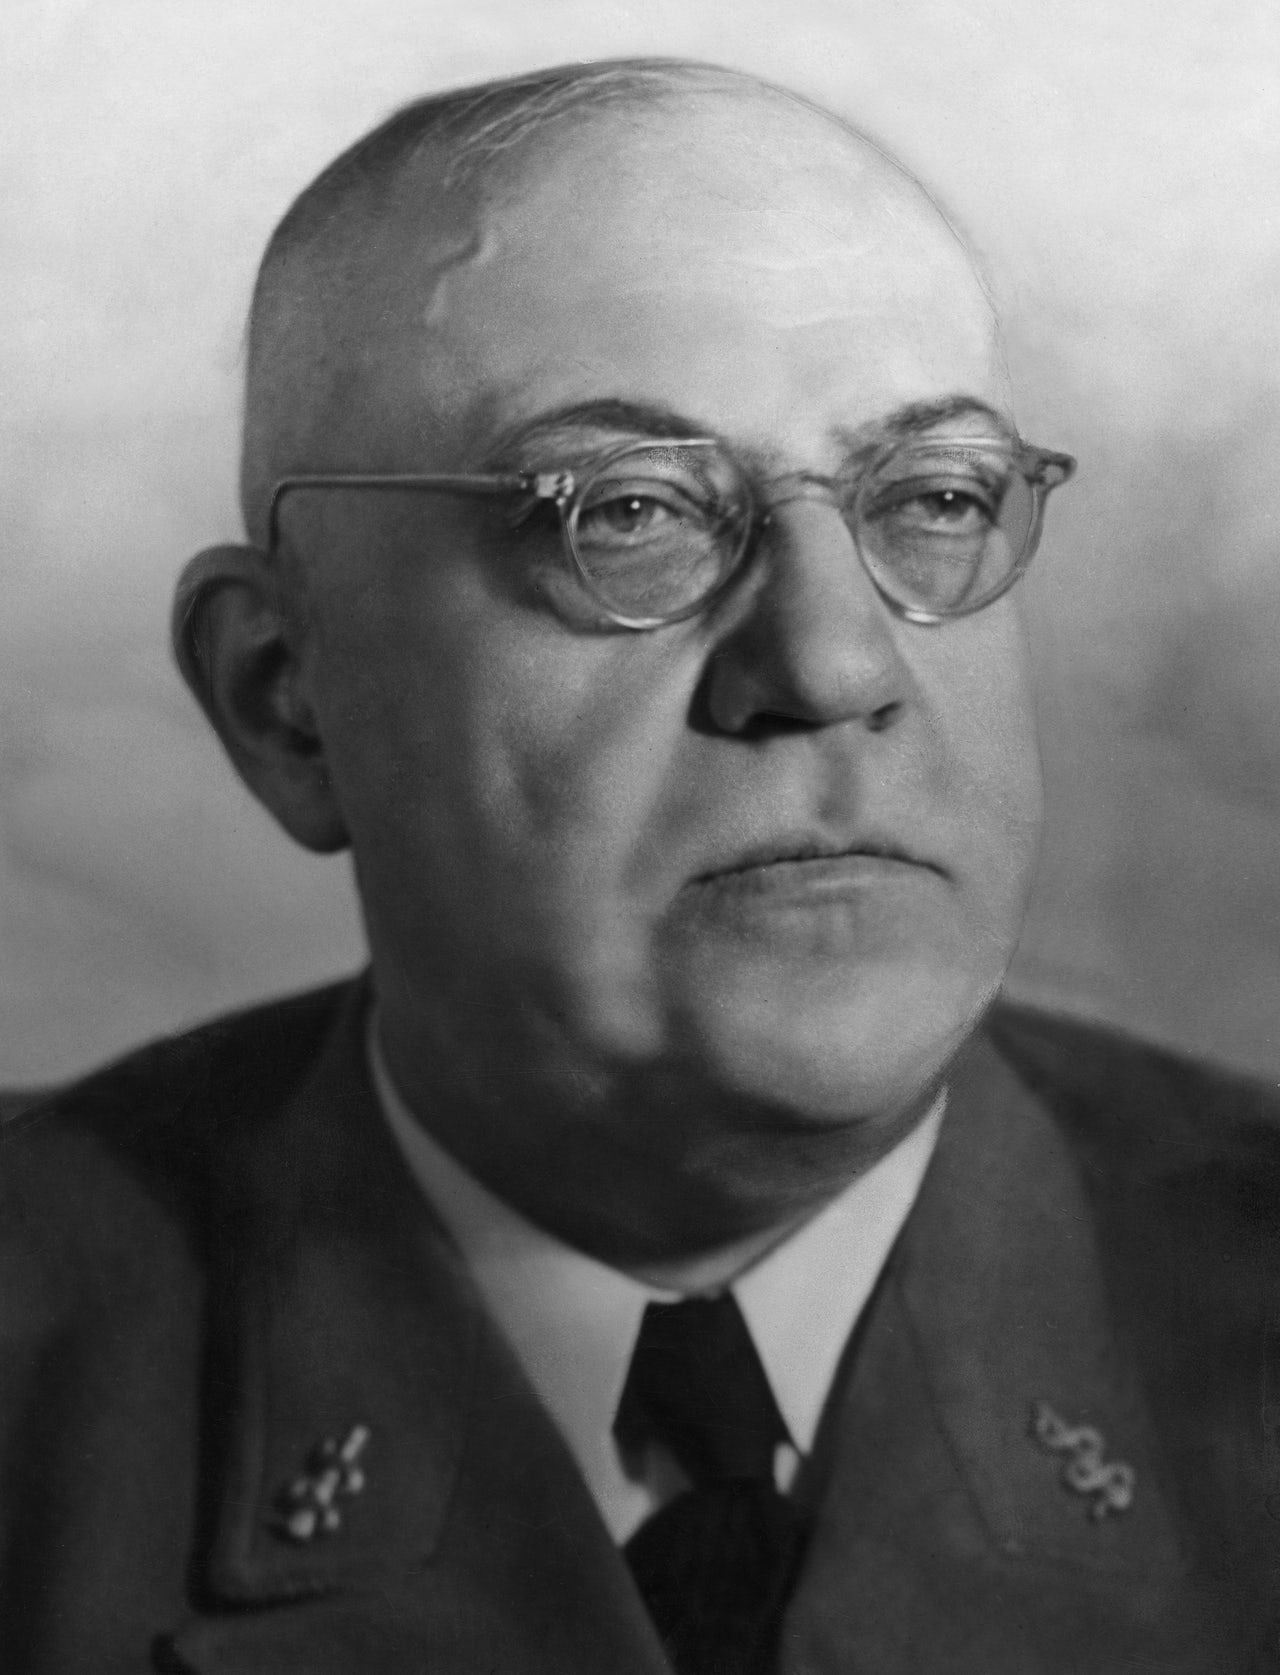 Theodor Morell, Hitler's personal physician.